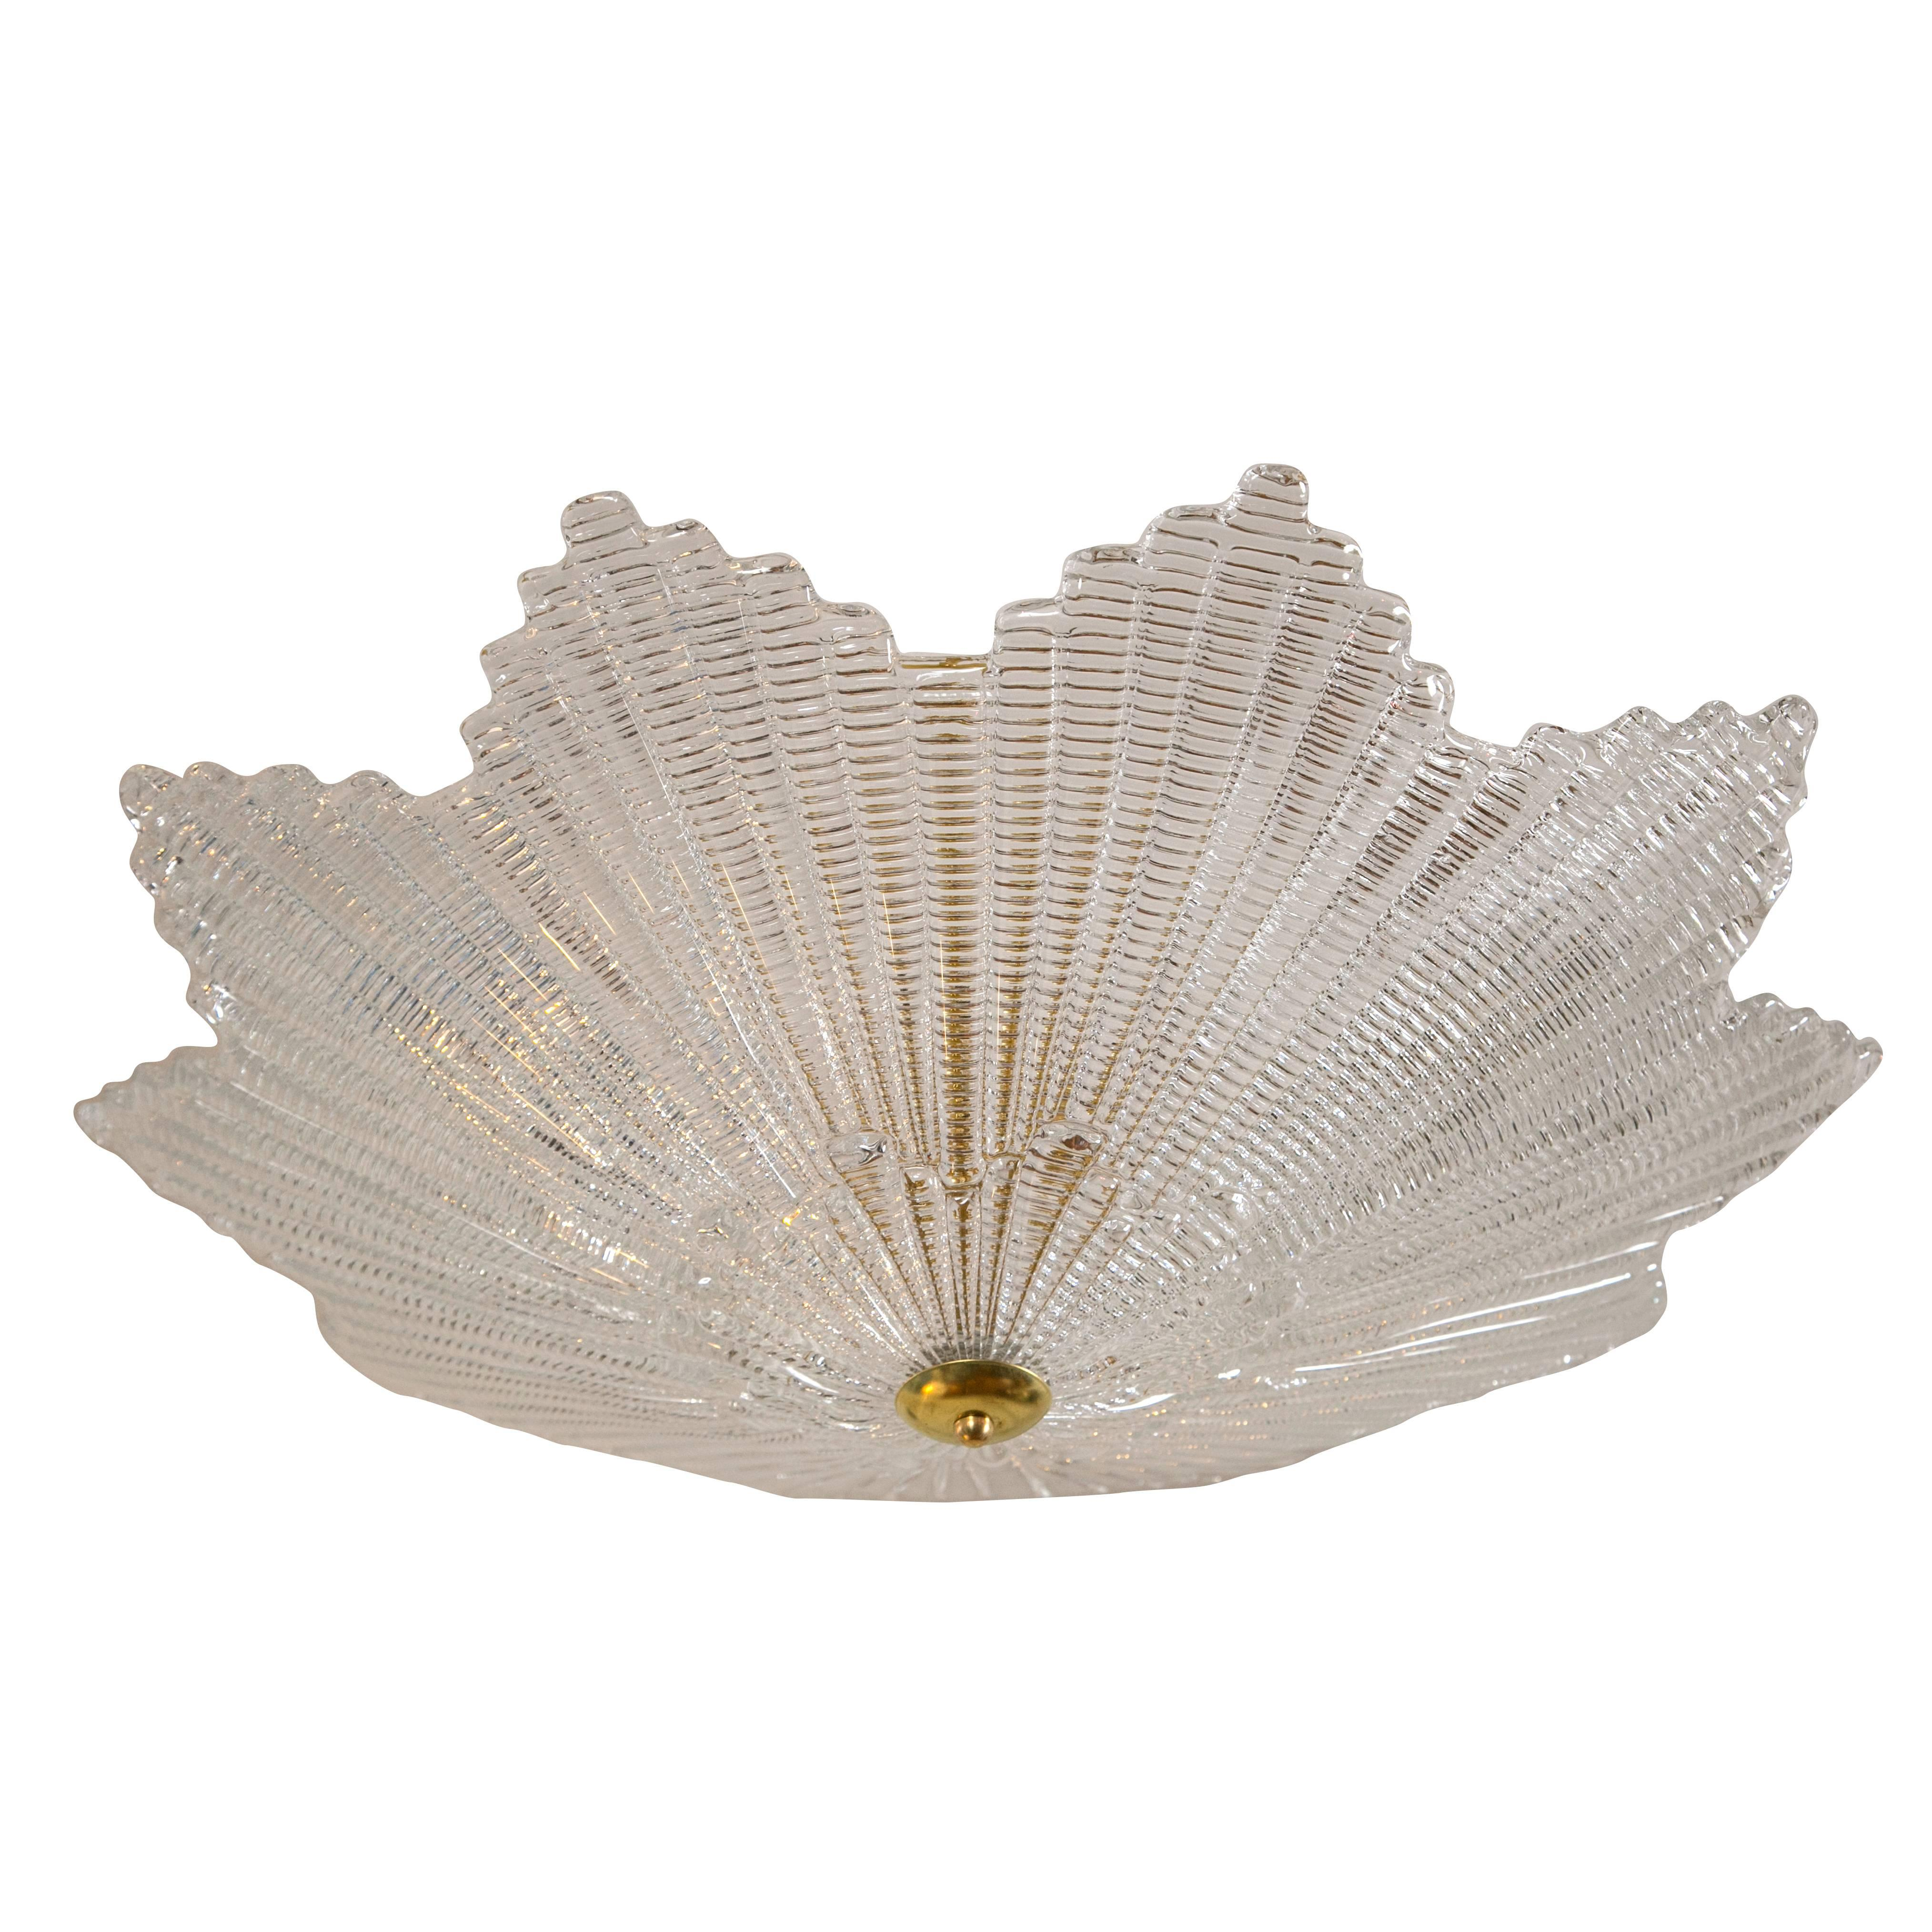 Large Murano Star-Shaped Ceiling Fixture